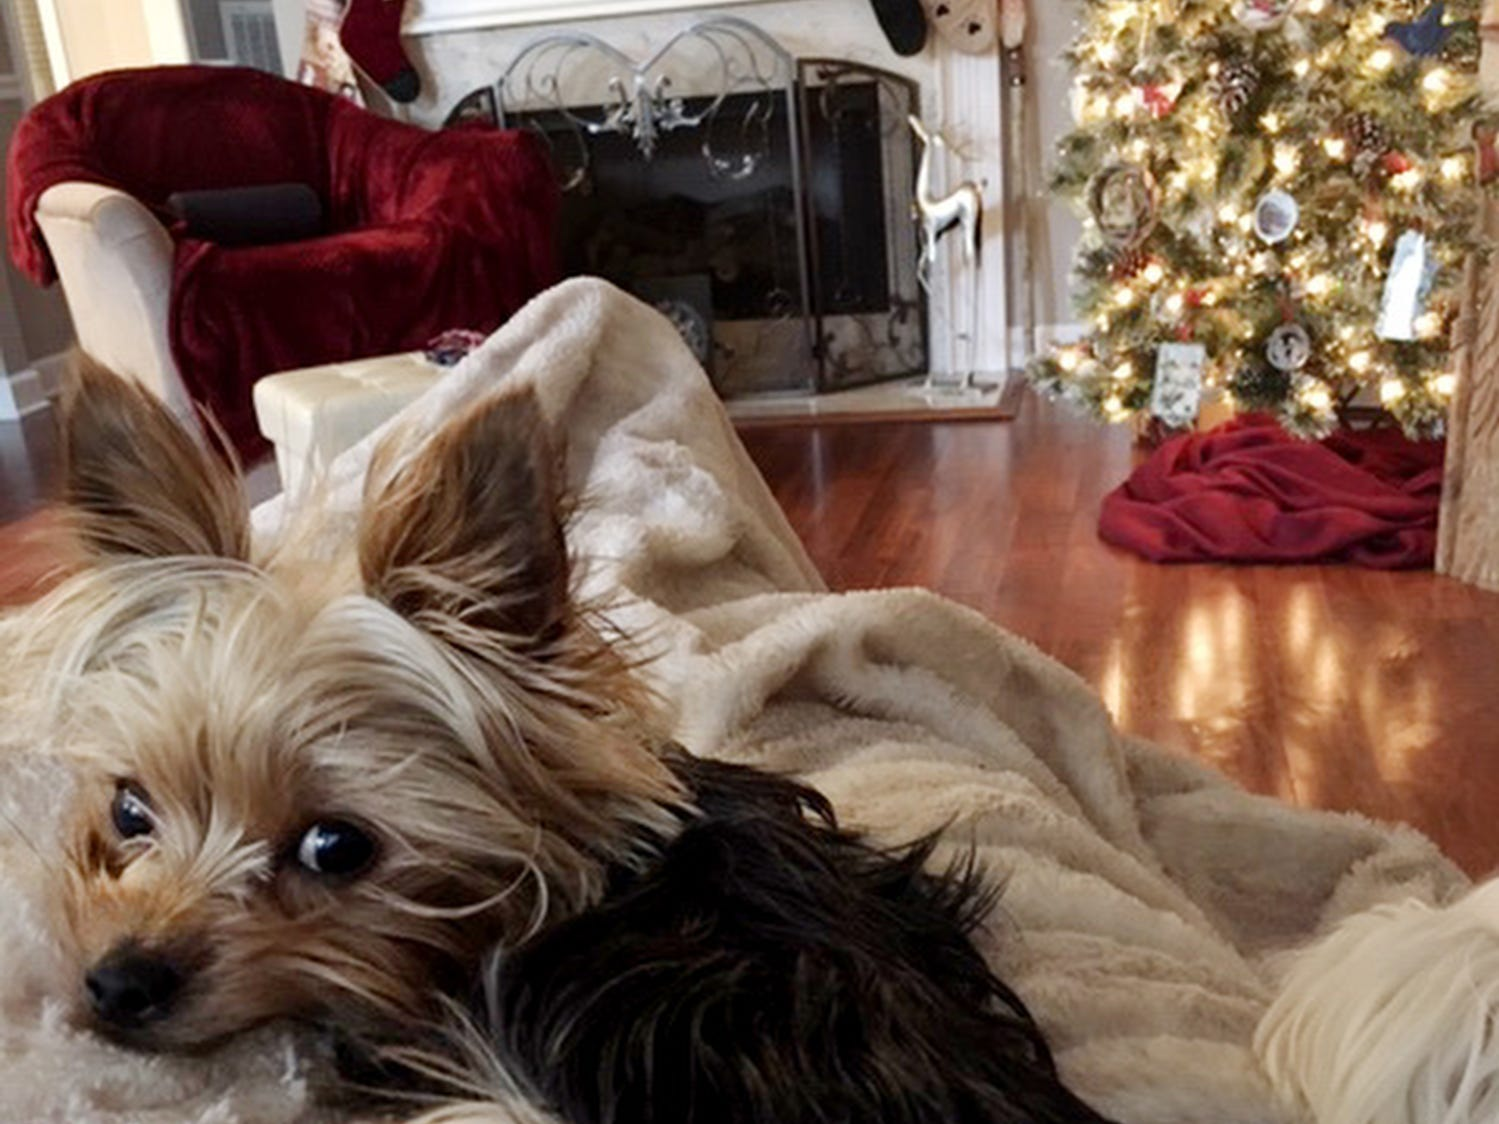 Debbie Bright of Franklin, Tenn., has  her Yorkie, Coco, on her lap in their den that is decorated for Christmas.